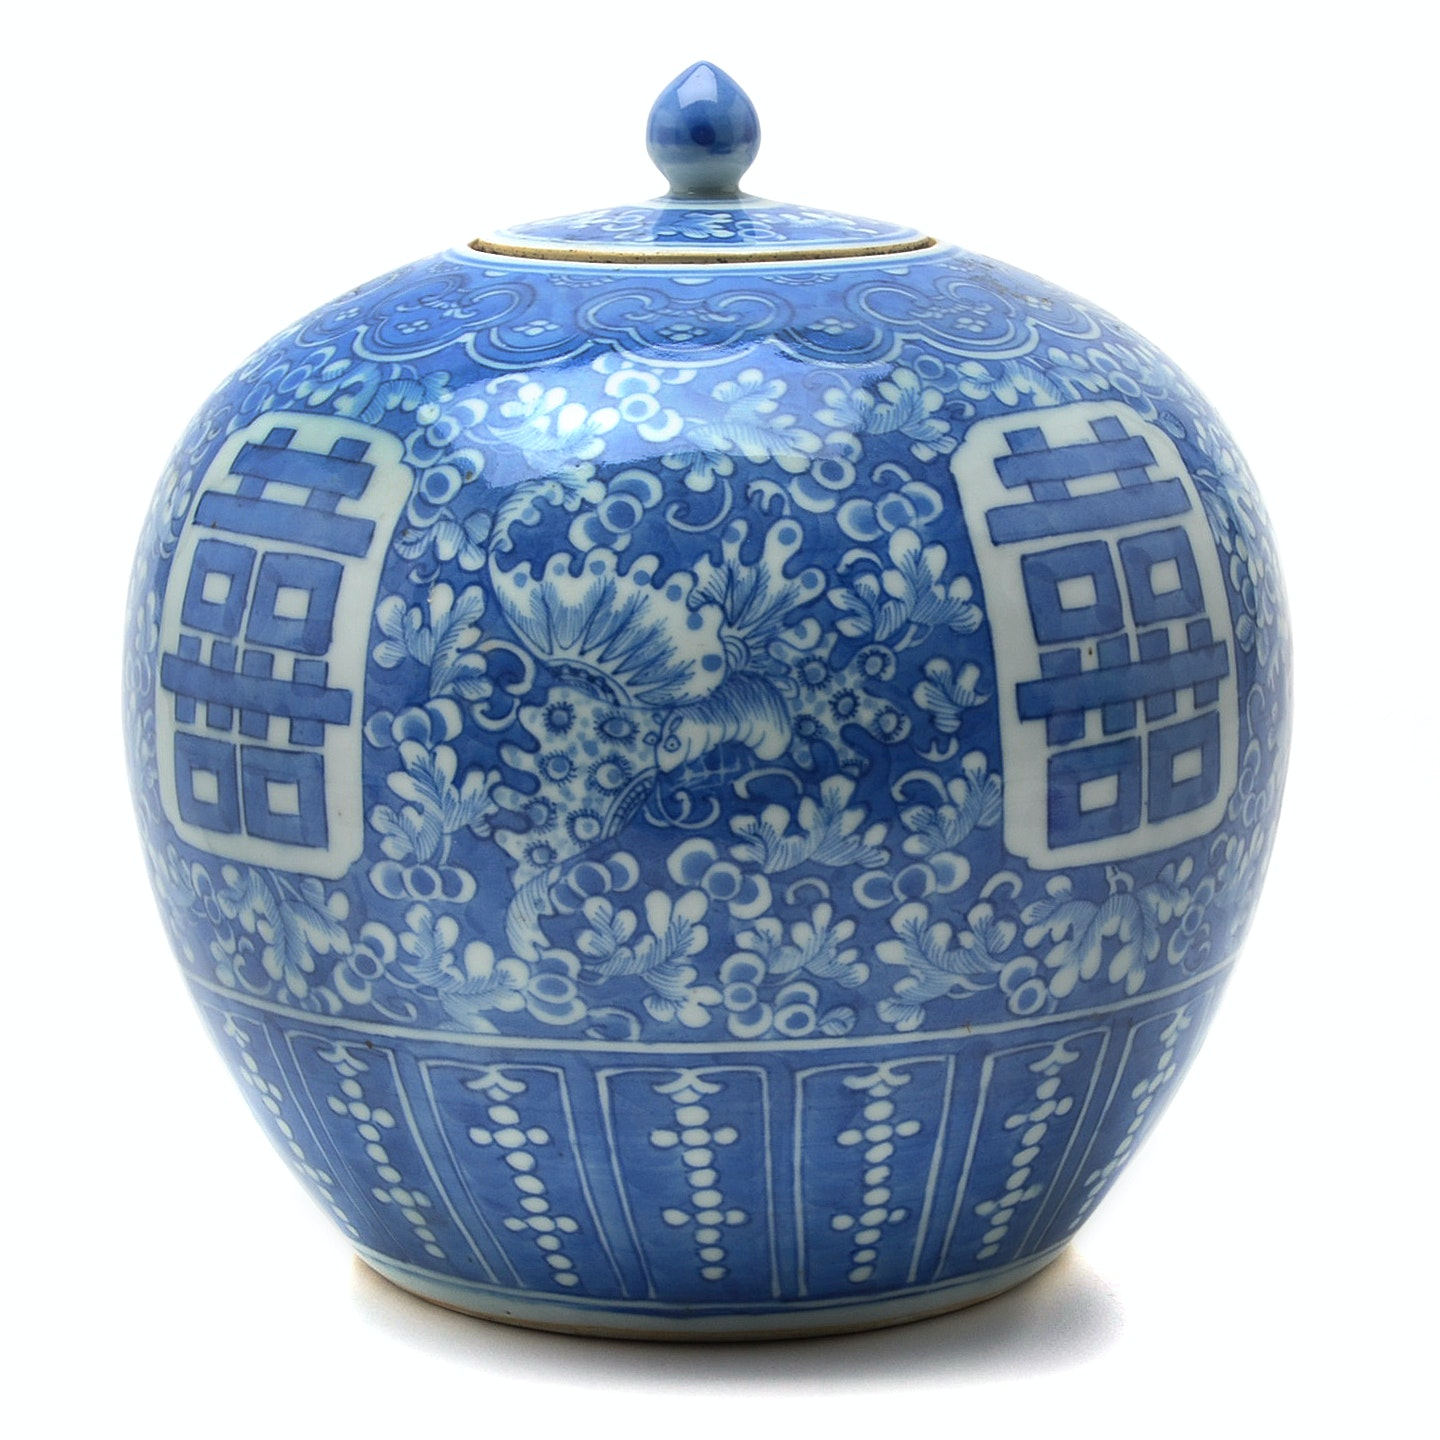 Qing Dynasty Blue and White Porcelain Covered Jar